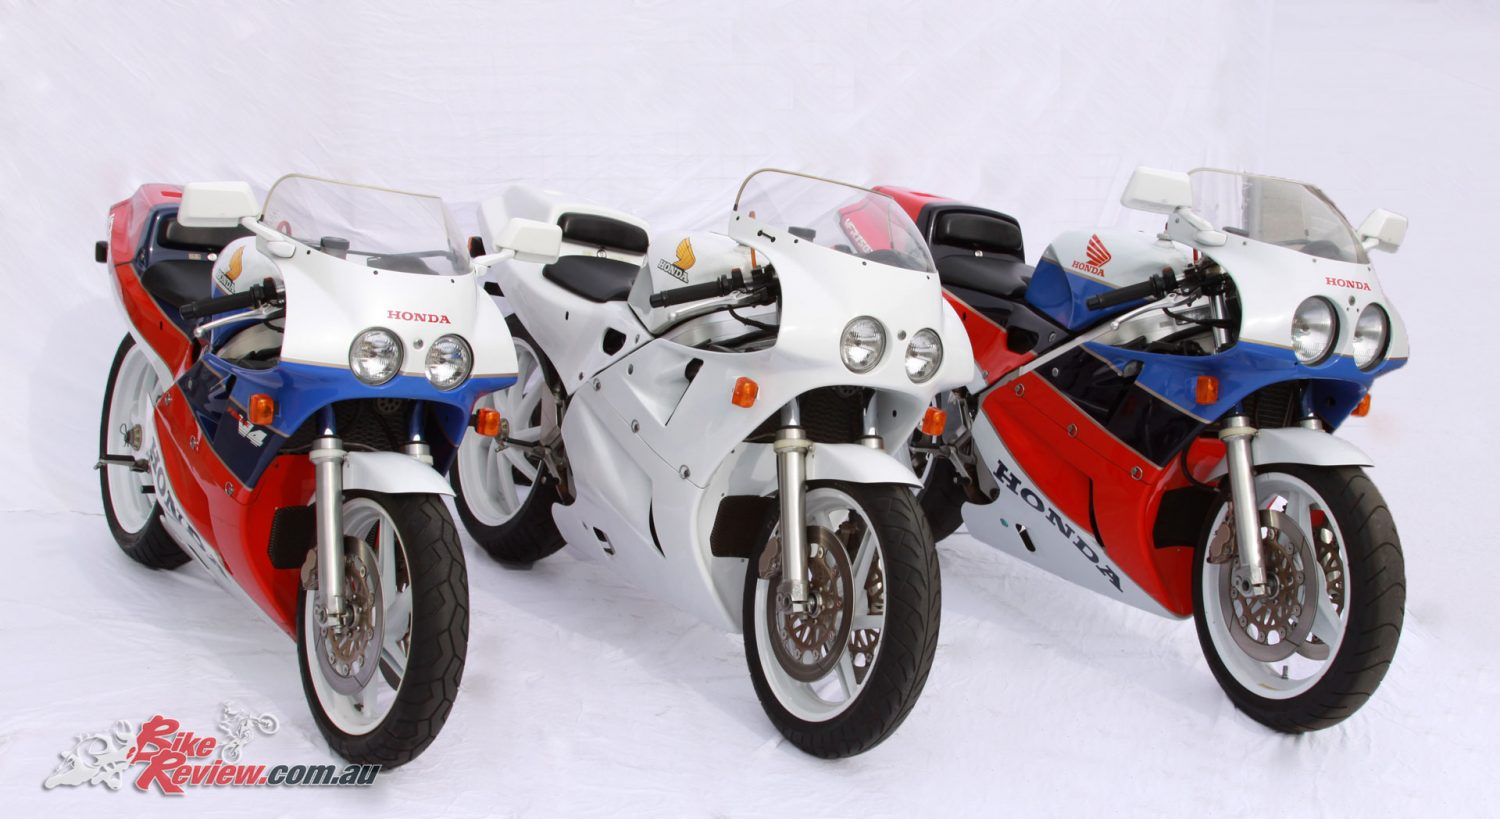 These VFR750R RC30s are part of a private collection, check out motogallur.com to see more of the motorcycles in the collection